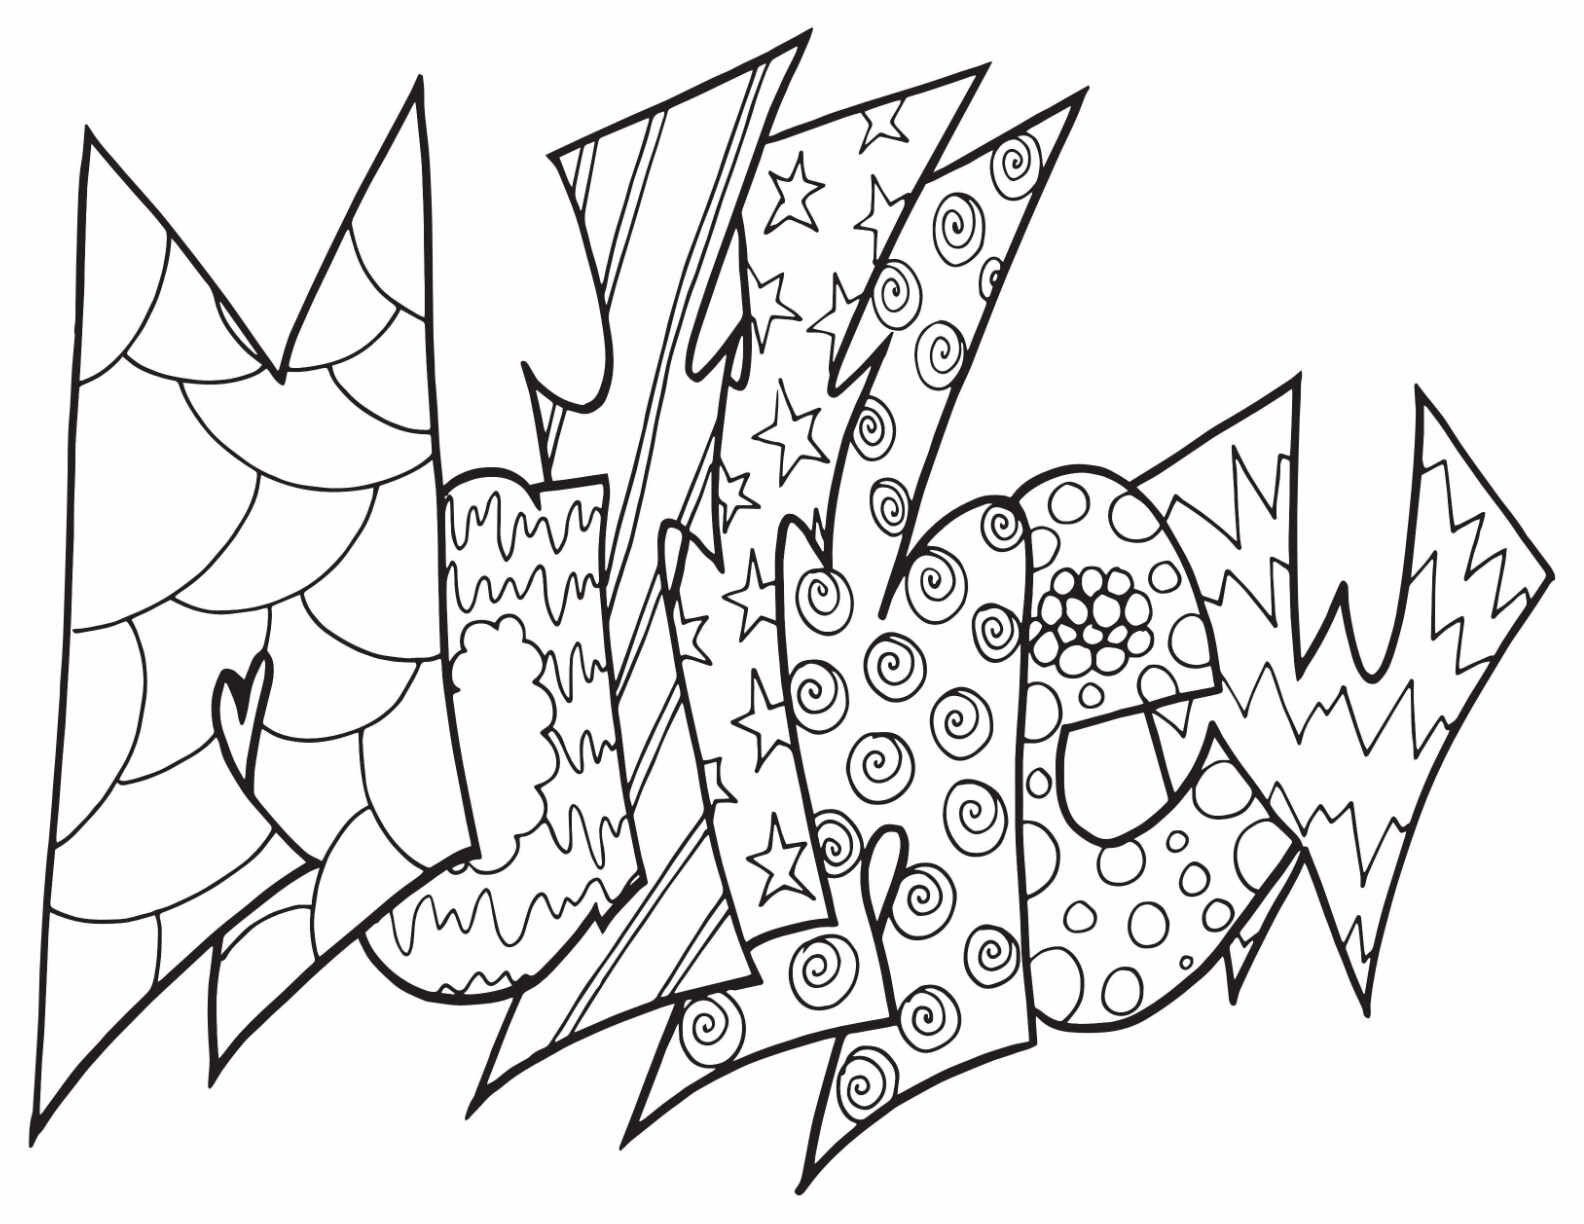 Matthew Two Free Printable Coloring Page Stevie Doodles Free Printable Coloring Coloring Pages Name Coloring Pages [ 1224 x 1584 Pixel ]